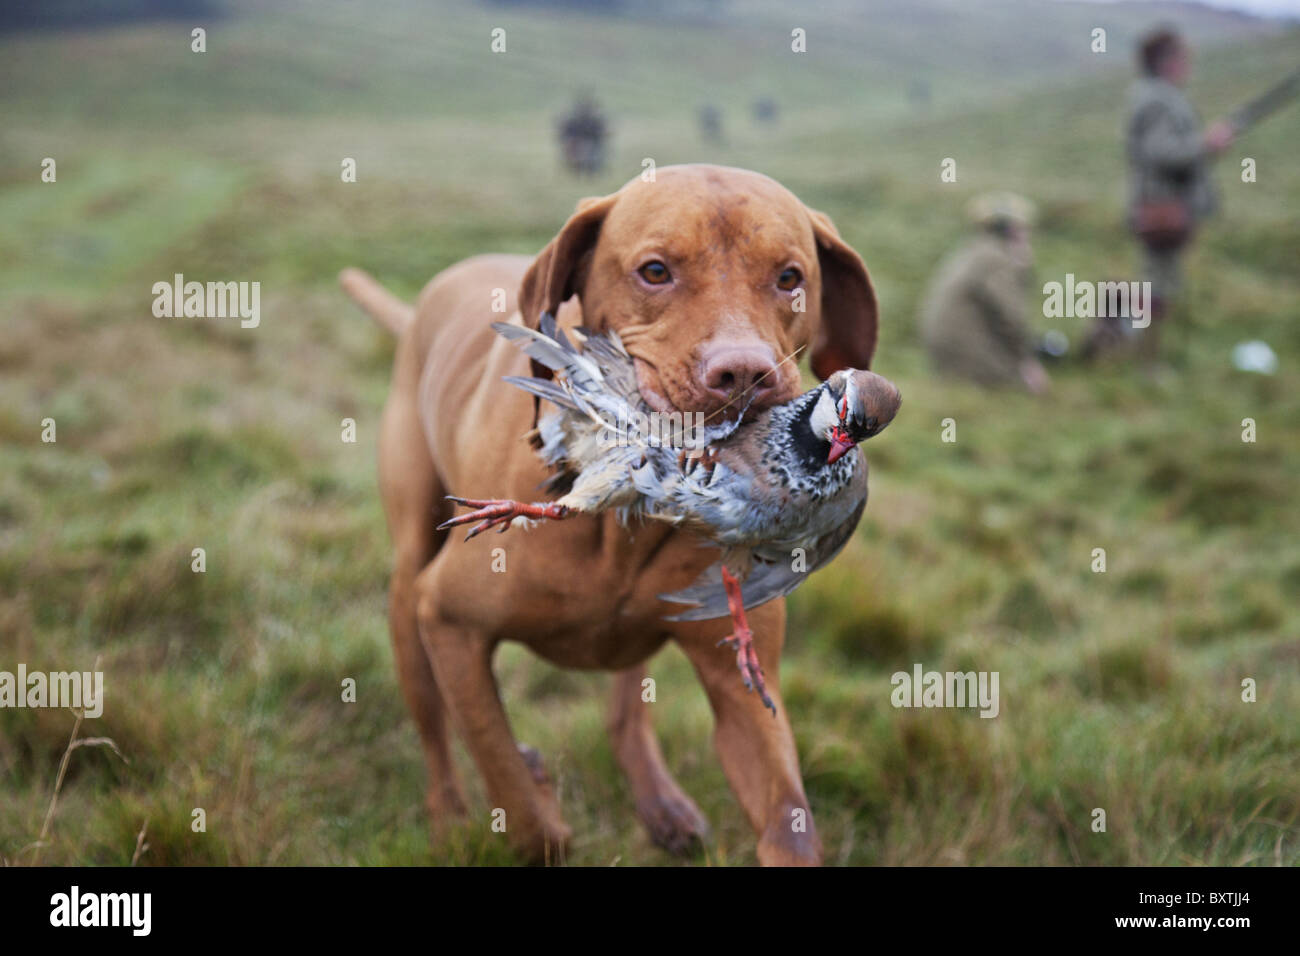 Well trained Vizsla Pointer with partridge that has been shot during a hunt. - Stock Image